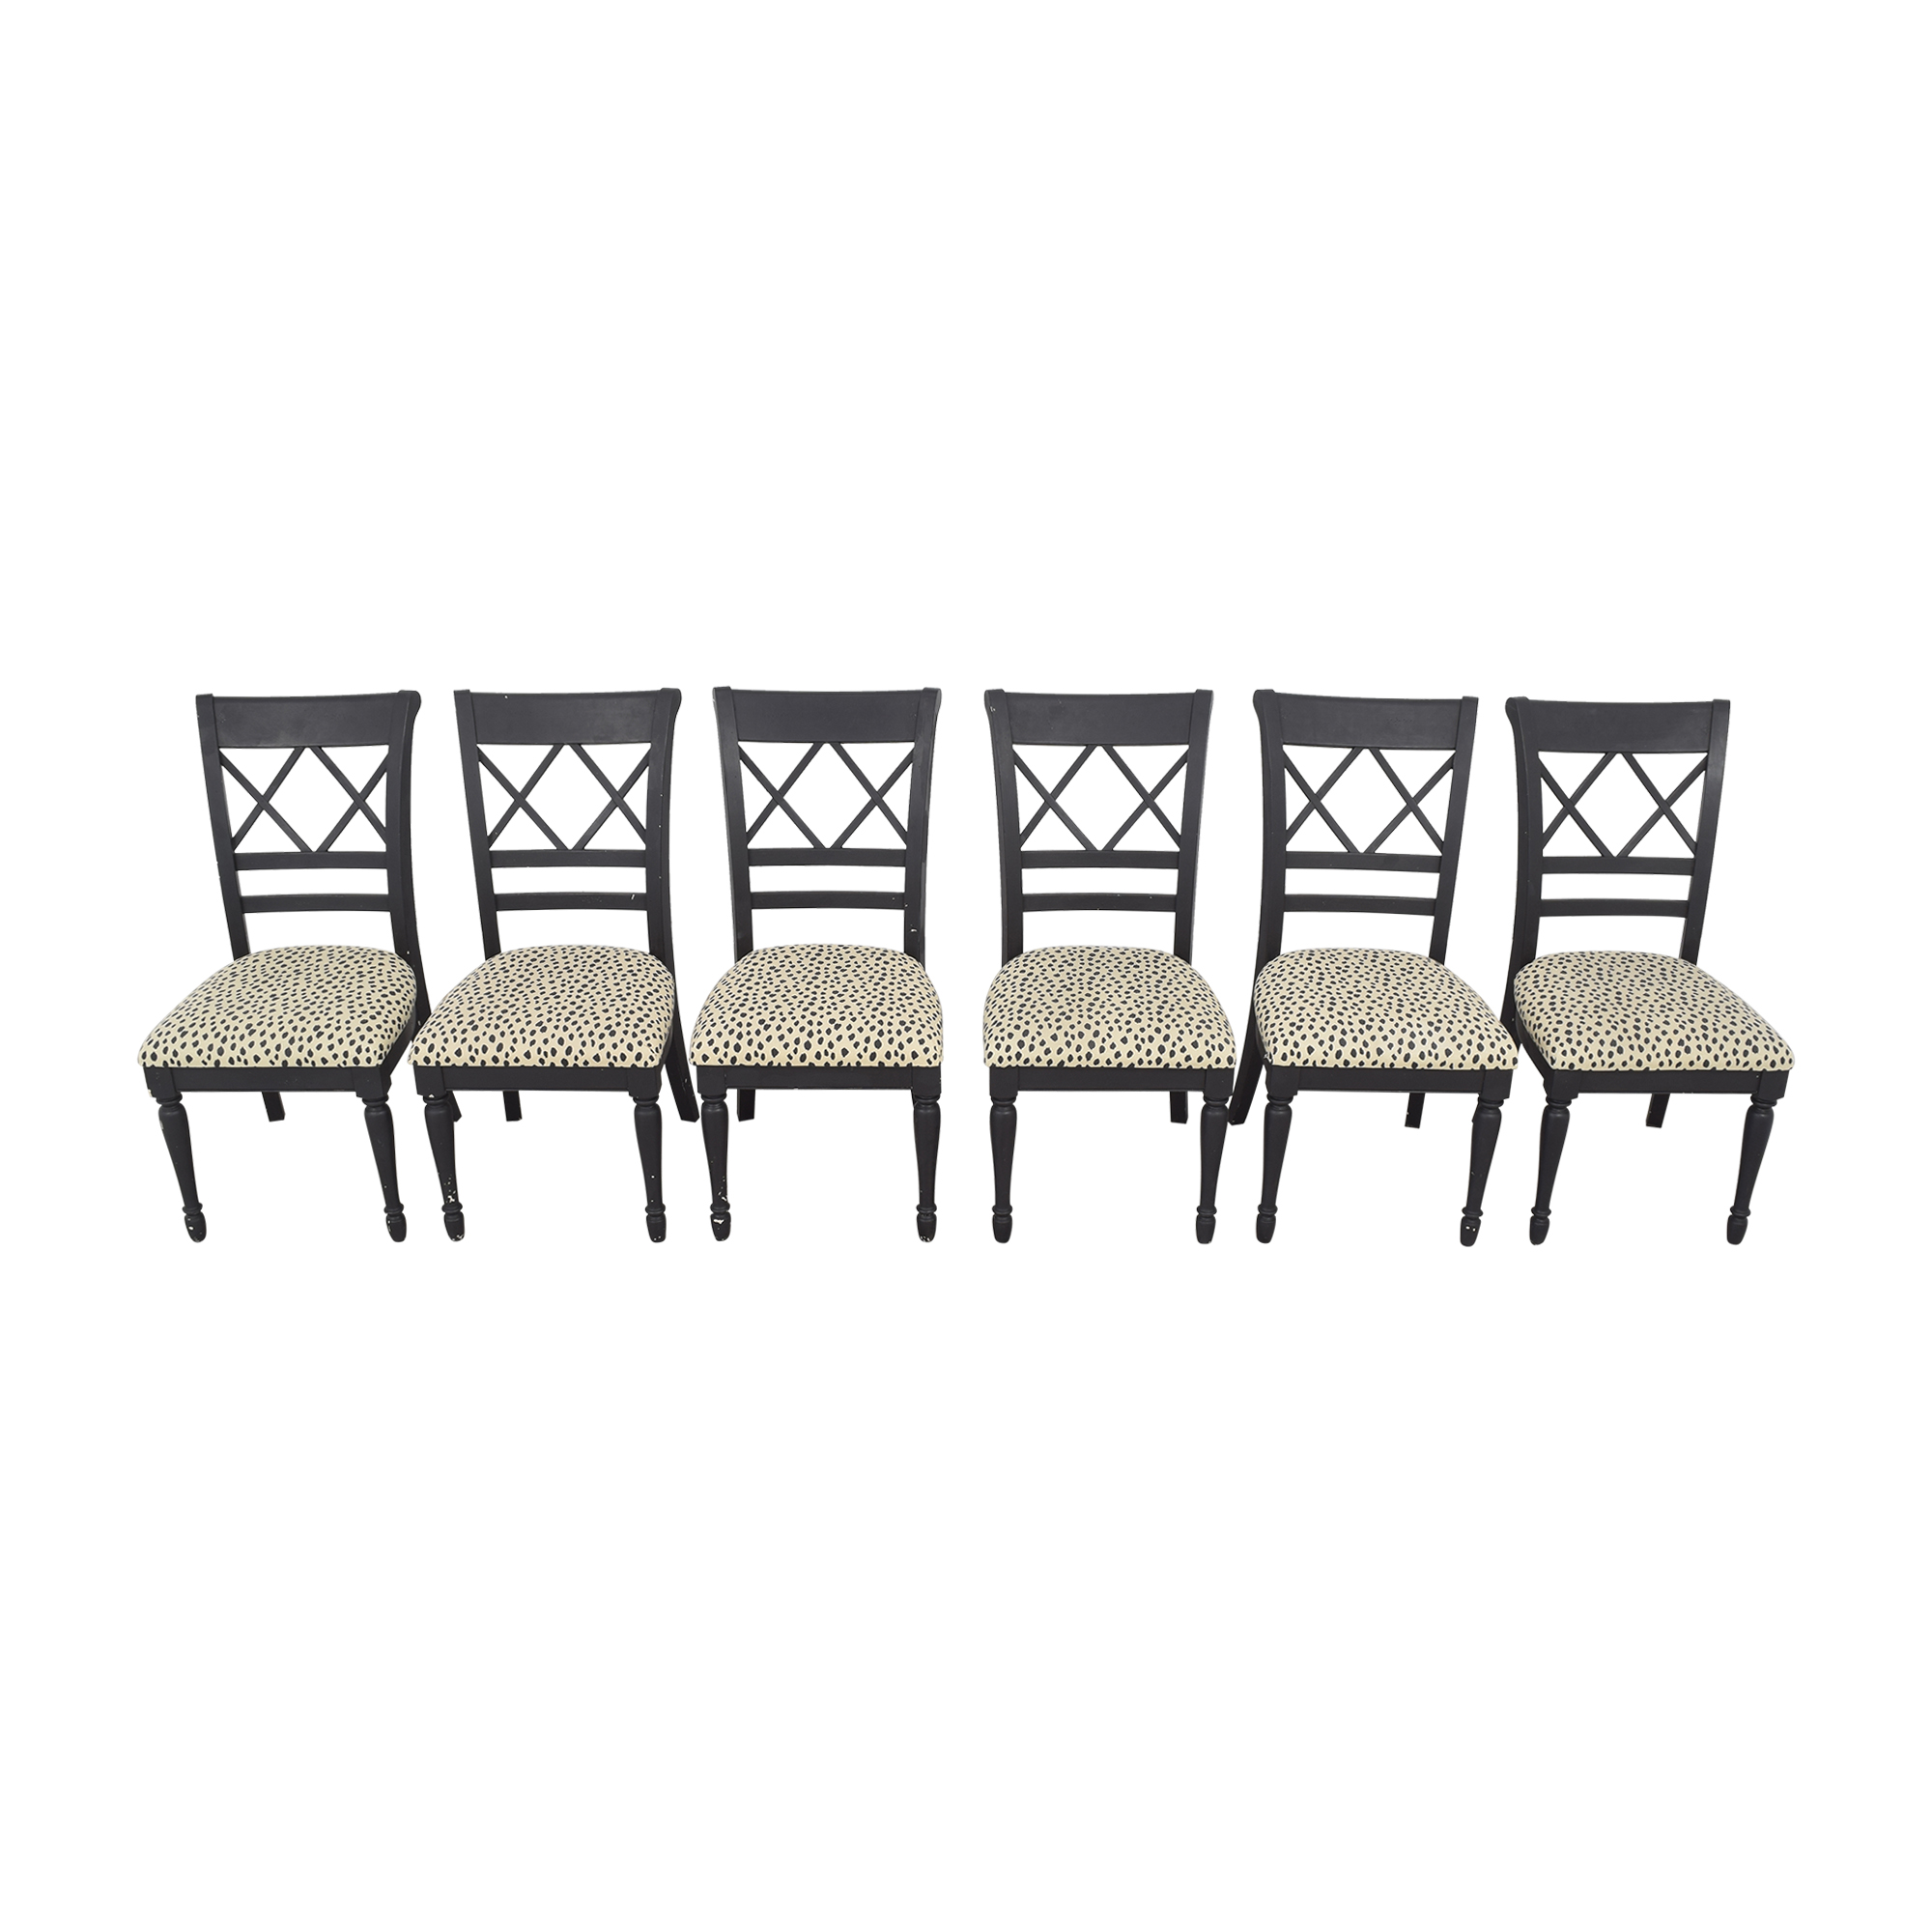 buy Cresent Fine Furniture Dining Chairs Cresent Furniture Dining Chairs